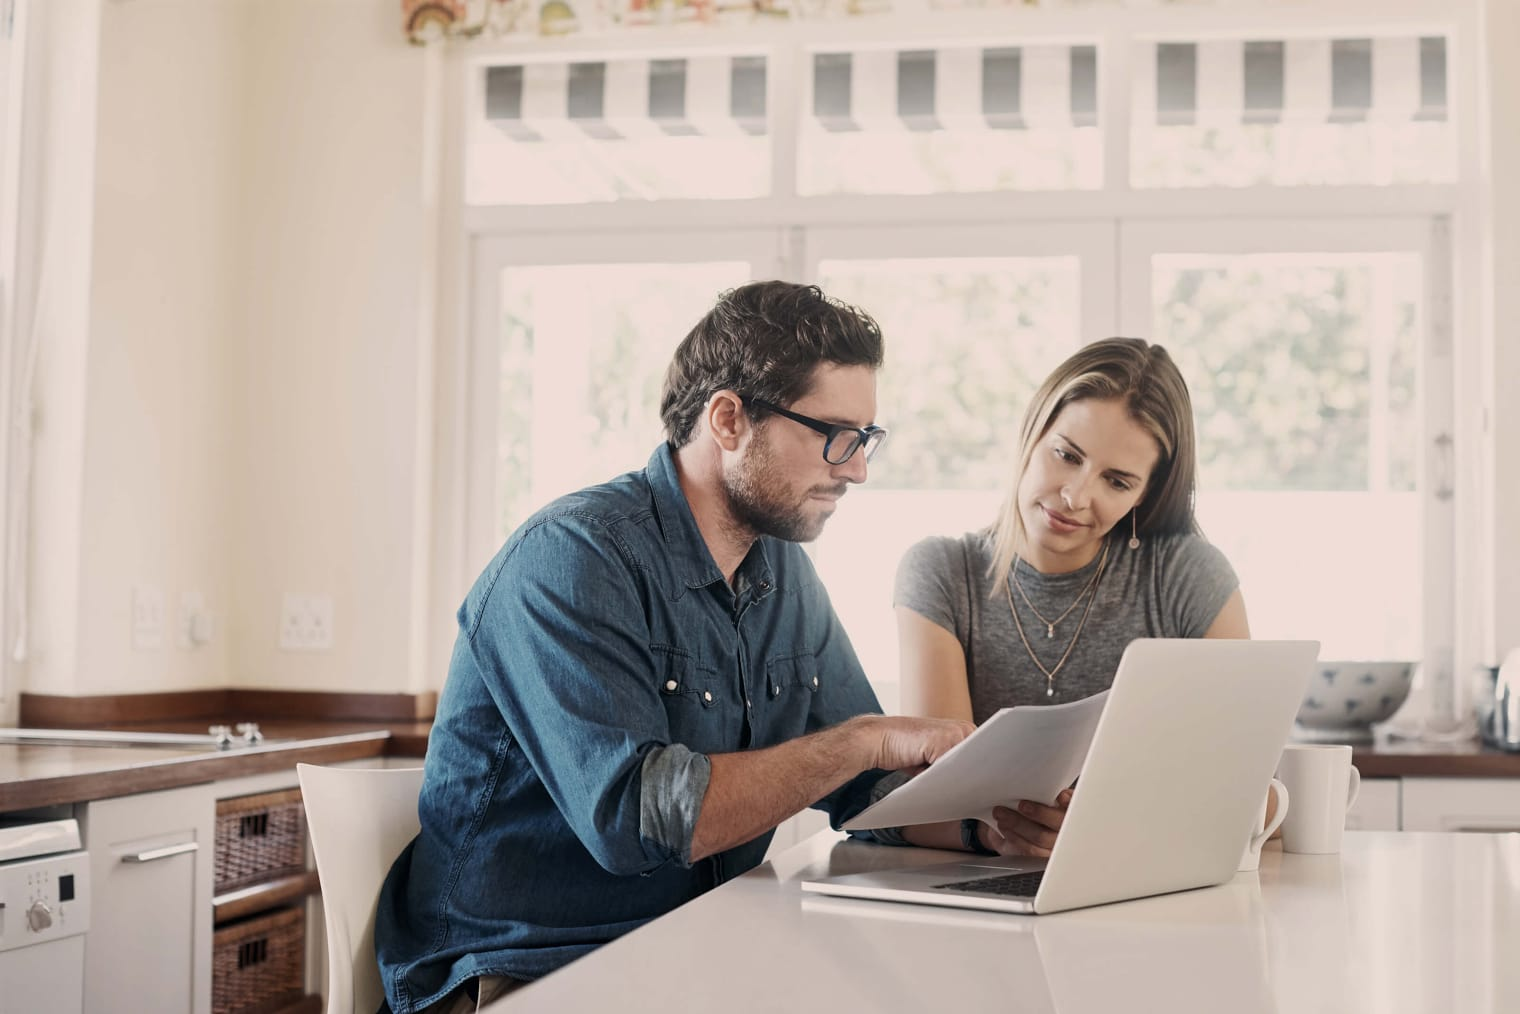 A man and a woman are sitting at a laptop in their kitchen.